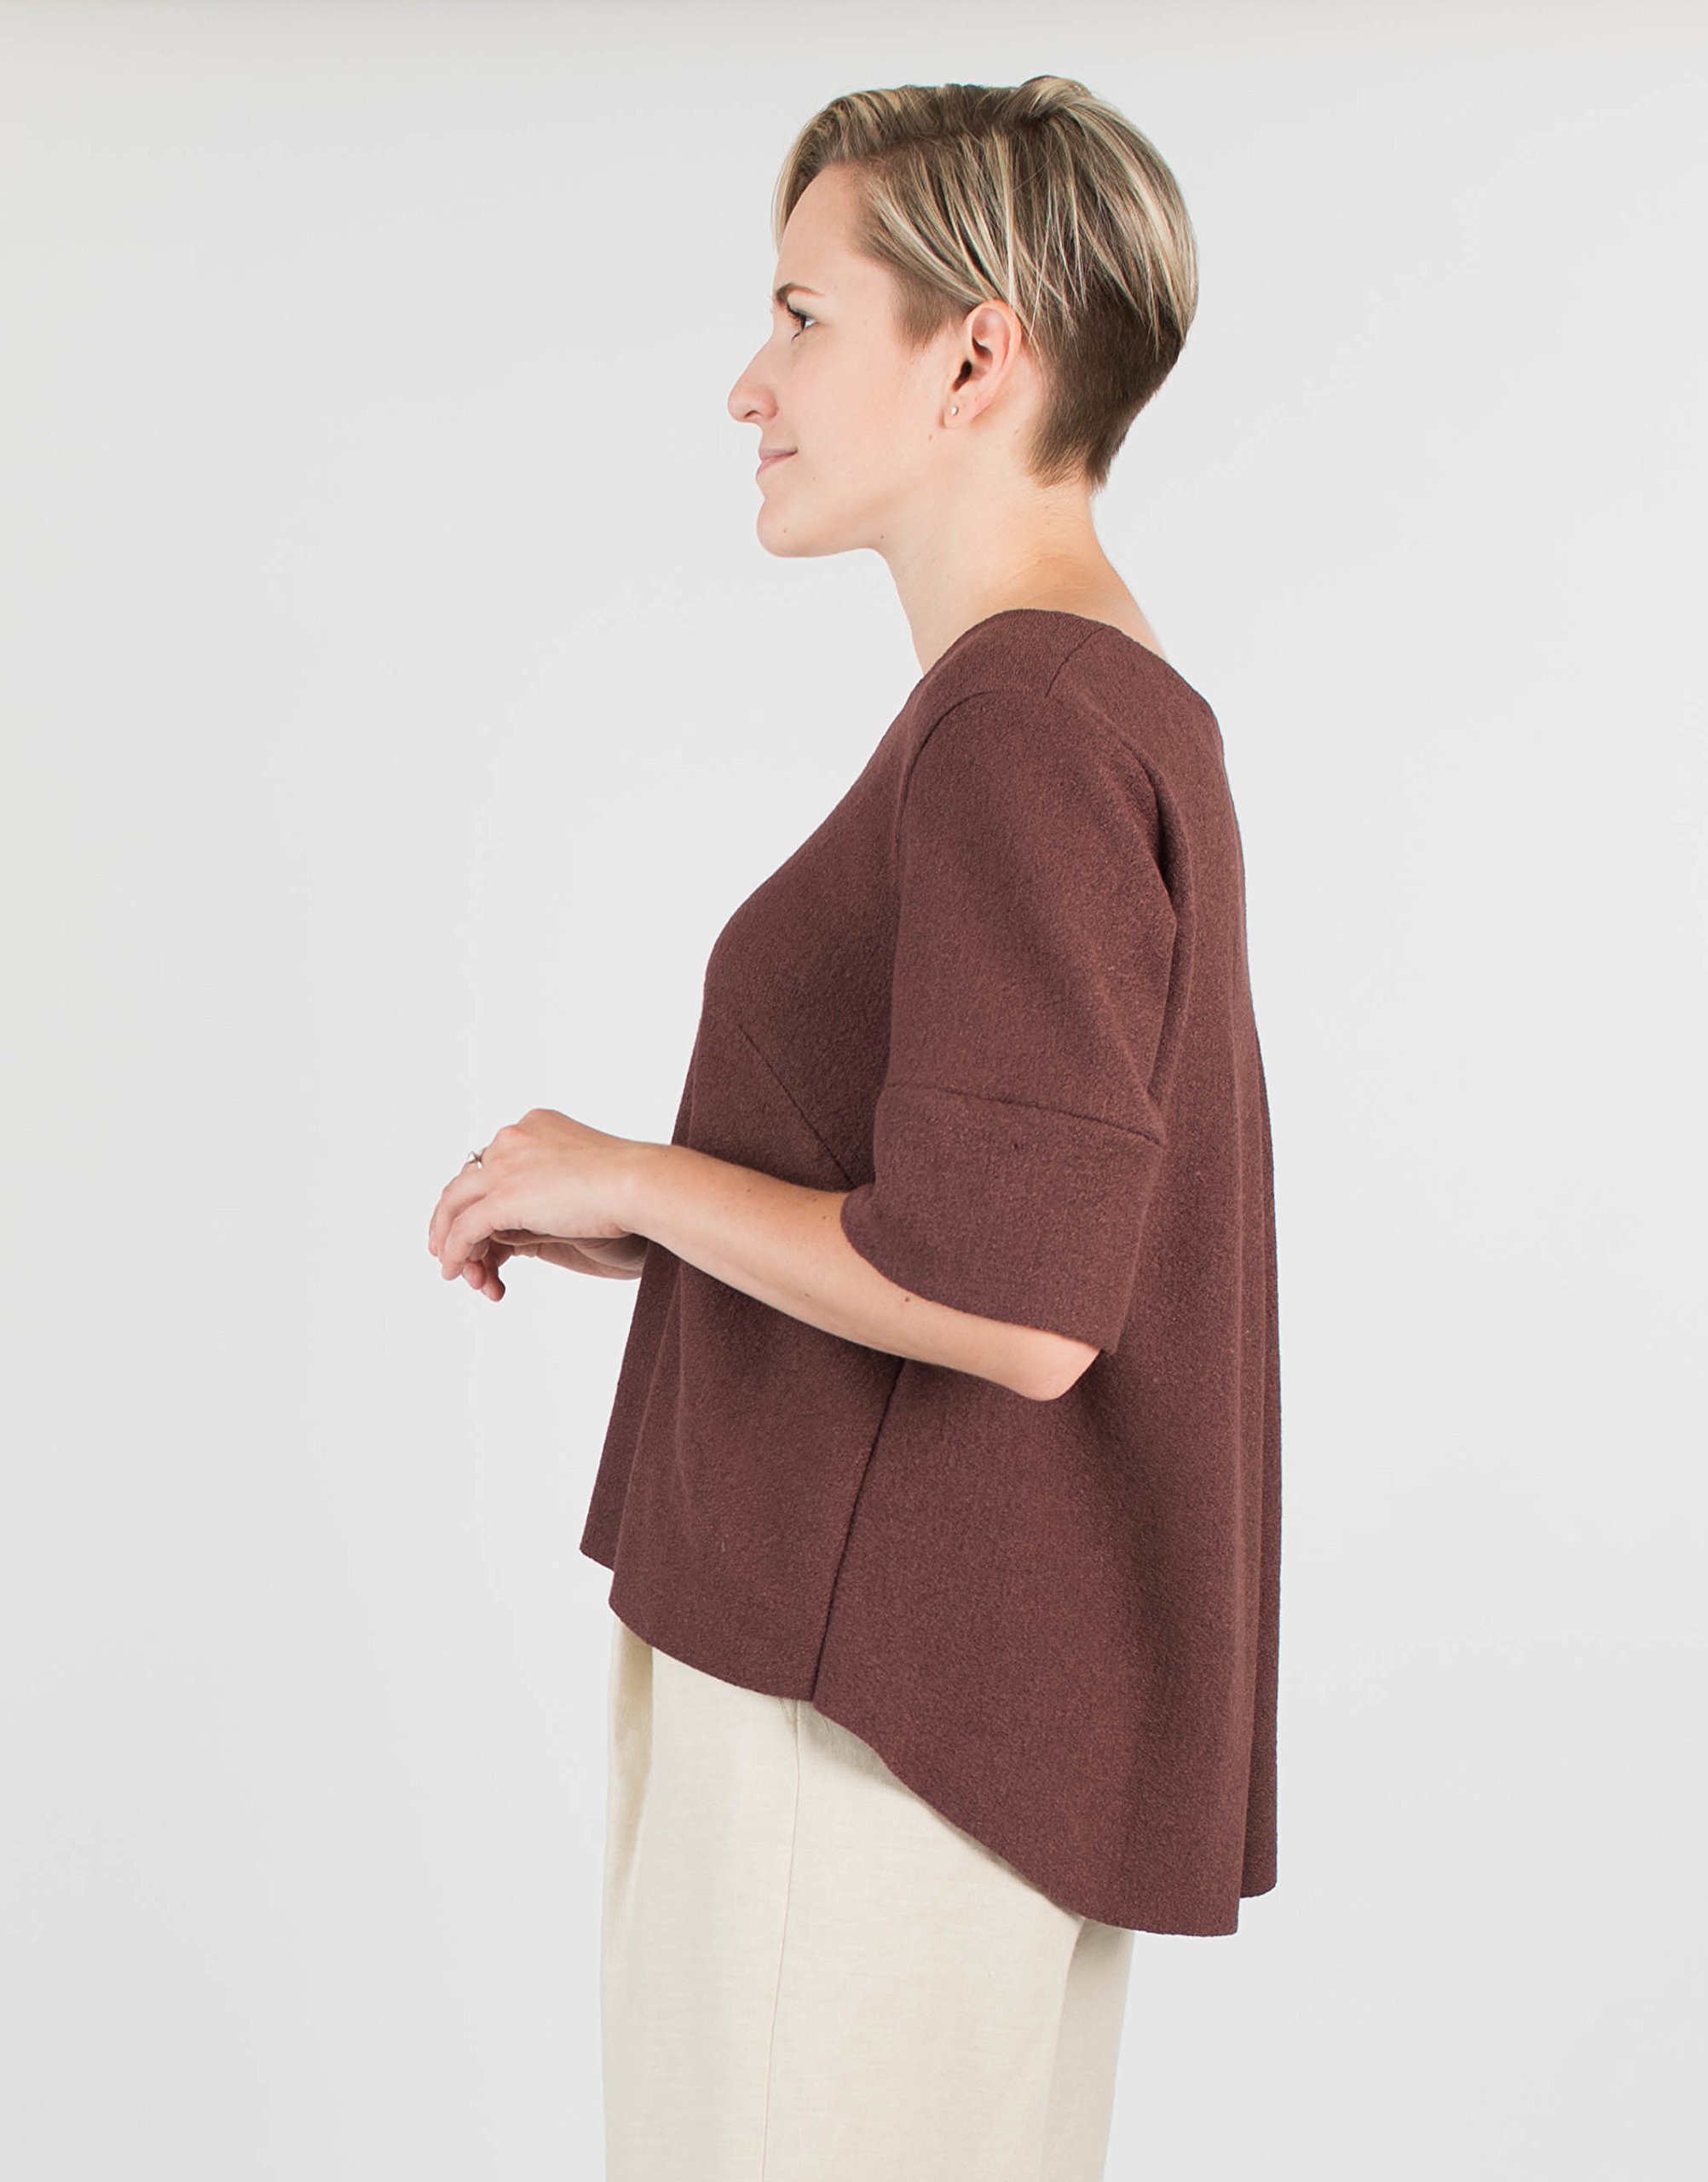 Women's Short Sleeve Chocolate Brown Wool Sweater